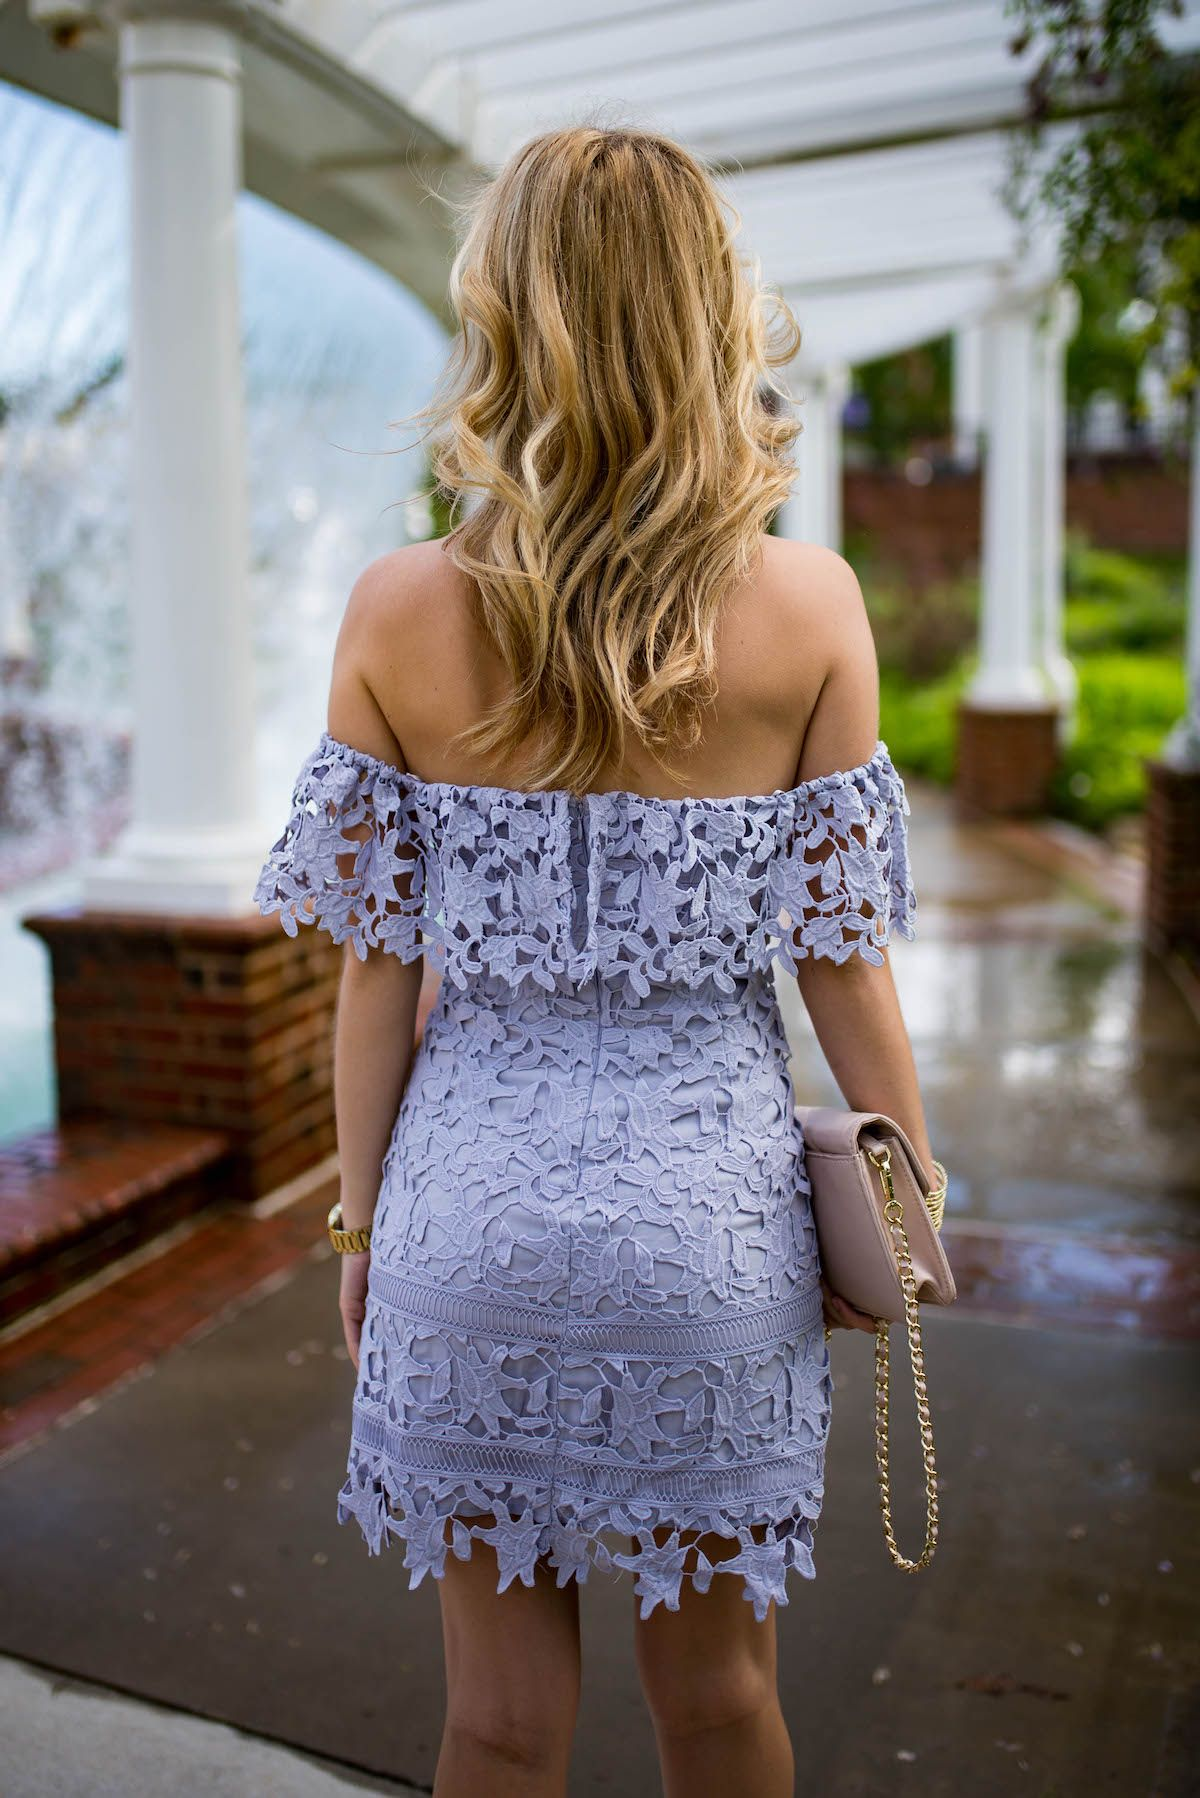 c91245bcd5 Headed out to a summer wedding  Off-the-shoulder + lace   the perfect wedding  guest pairing.